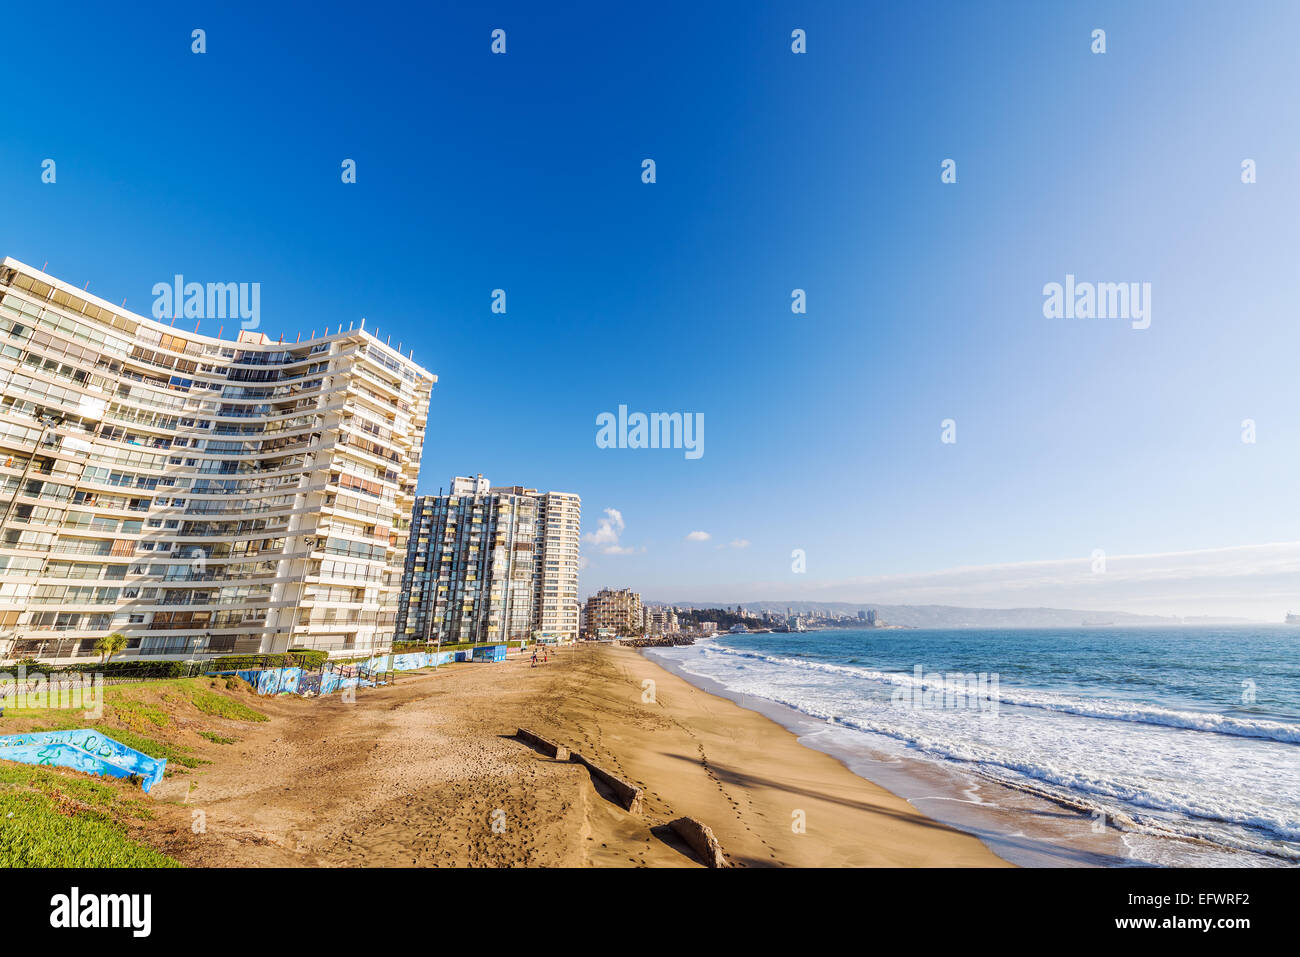 Beach and apartment buildings in Vina del Mar, Chile - Stock Image